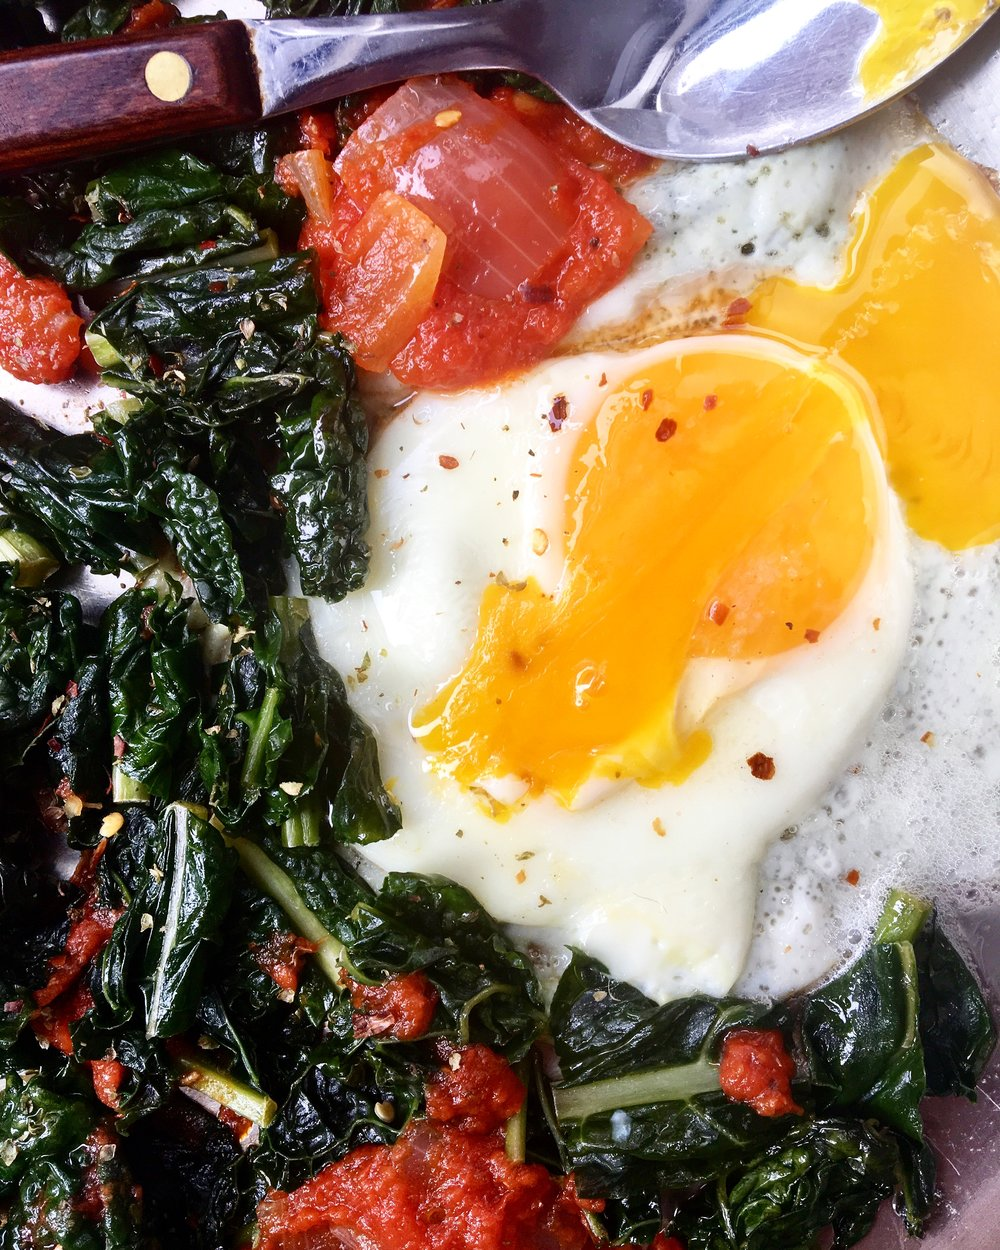 Kale / Sauce / Eggs: $1.68 for breakfast at home